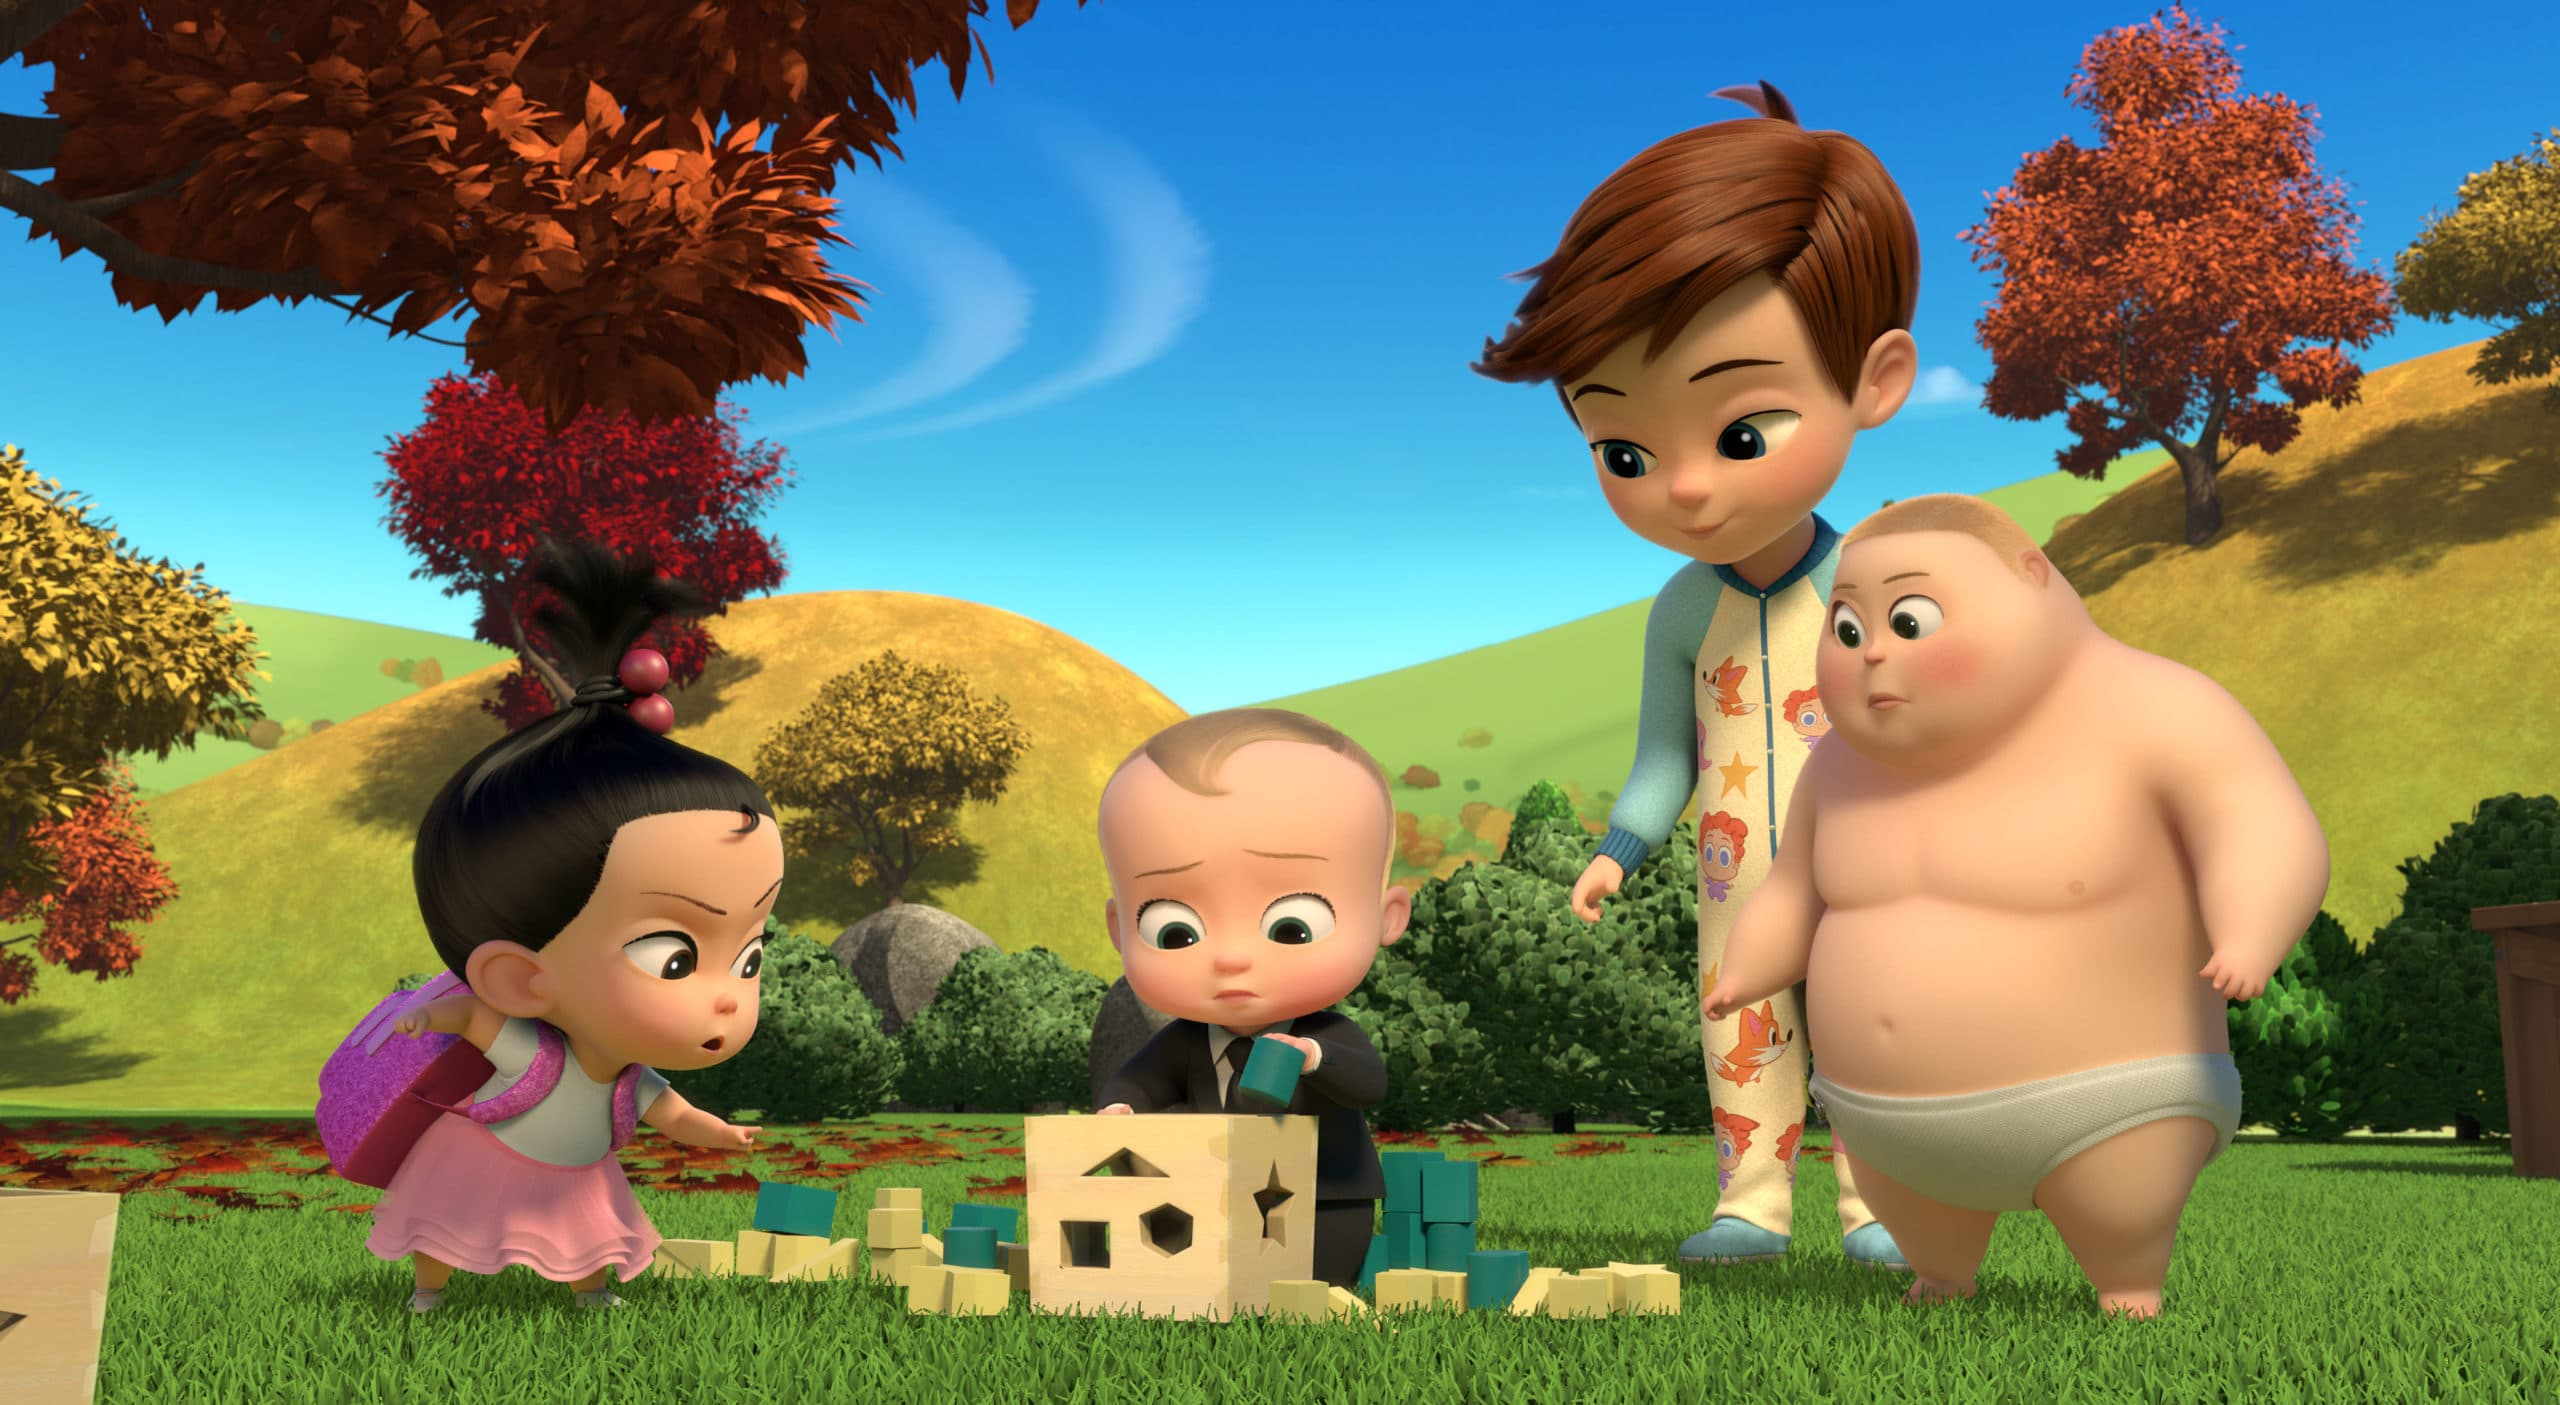 Staci, Boss Baby, Tim and Jimbo. Boss Baby Season 3 Back In Business - Netflix Premiere March 16. The boss is back, baby! After a long sabbatical everyone's favorite modern career baby makes a comeback in the newly launched Season 3 trailer for ?DreamWorks The Boss Baby Back in Business?.